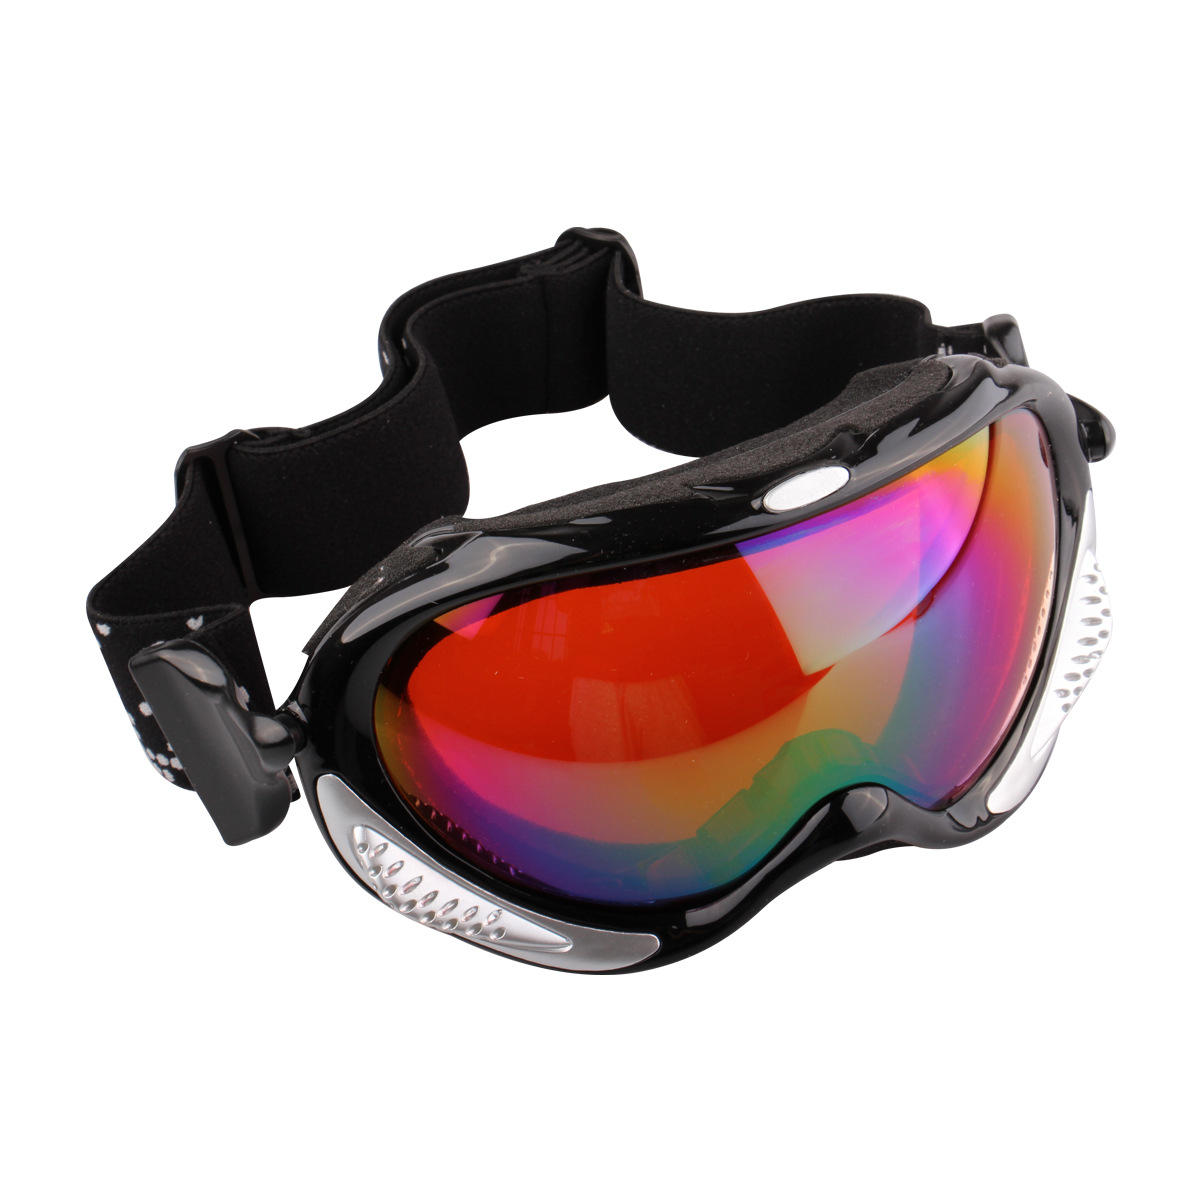 Mumian Trend Sports Rui Zhi Men And Women Ski Goggles Mountain Climbing Eye-protection Goggles S01